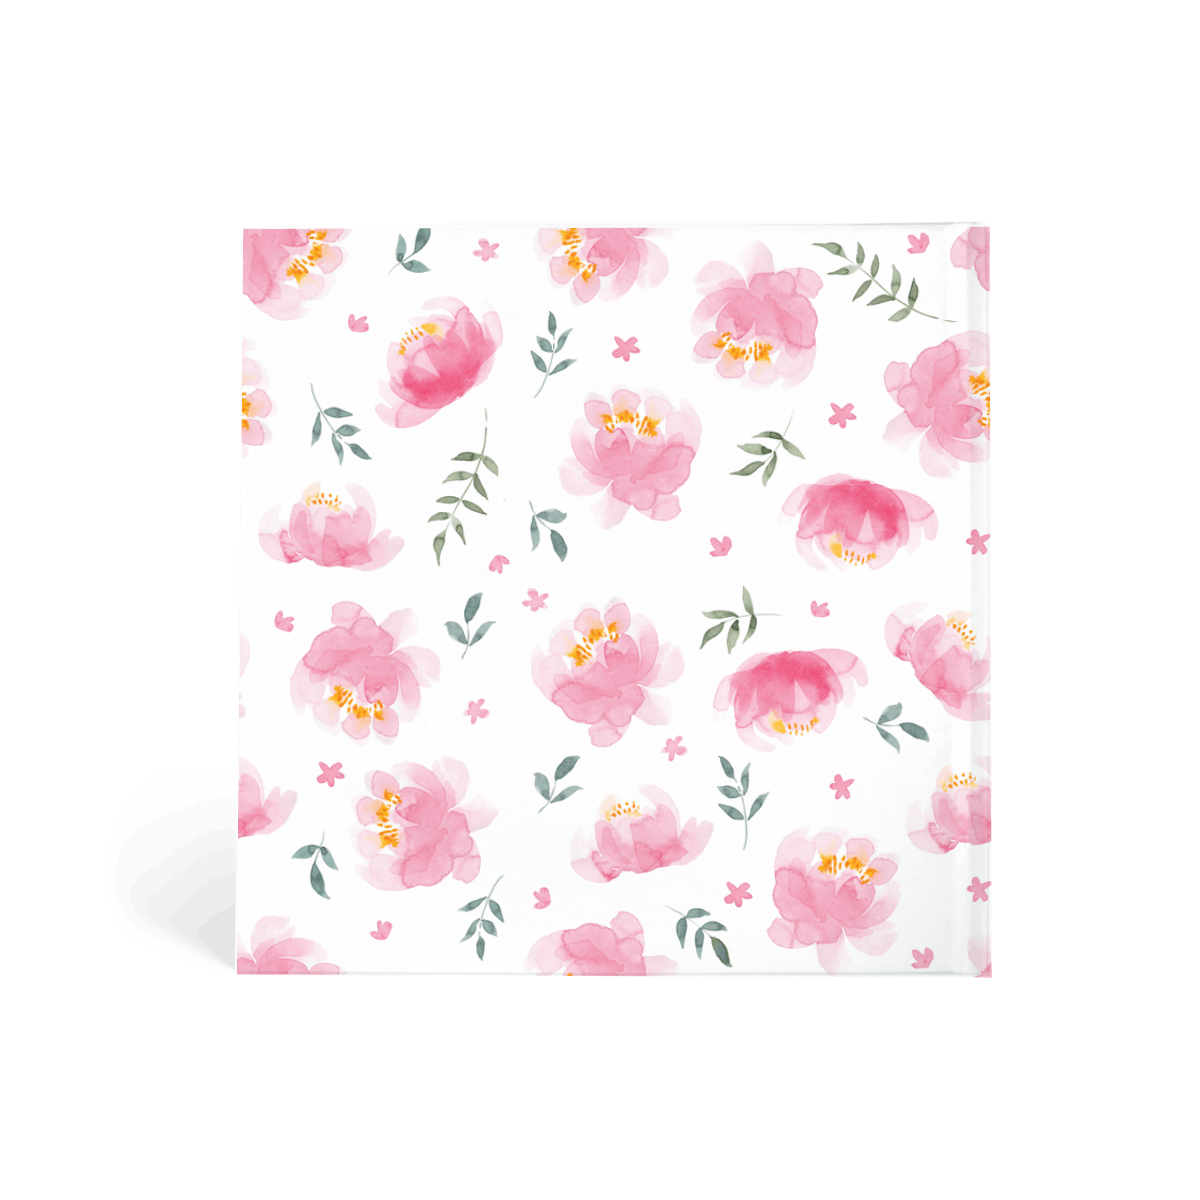 Https%3a%2f%2fwww.papier.com%2fproduct image%2f42389%2f24%2fpeonies 10847 back 1533118484.png?ixlib=rb 1.1